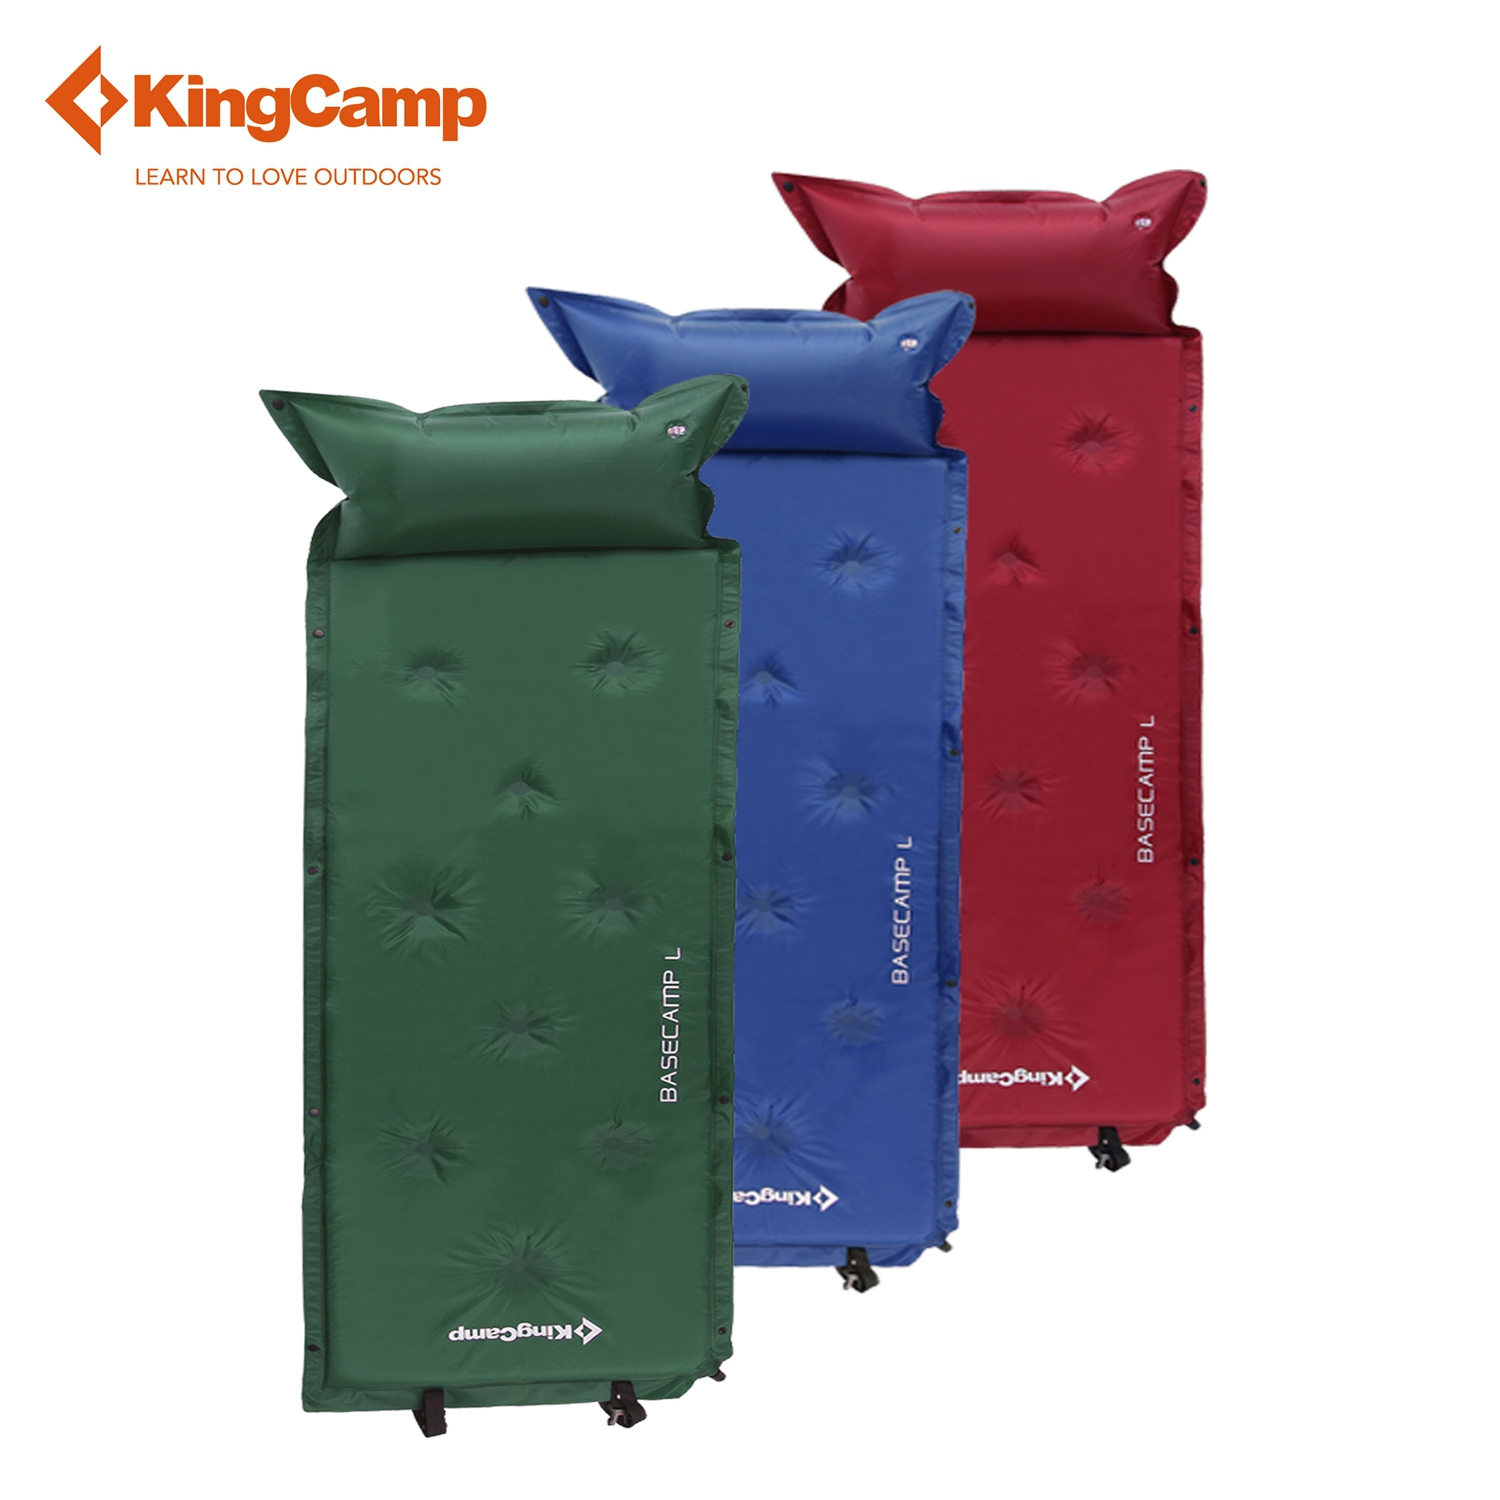 KingCamp 2016 Outdoor Camping Mat Self-Inflating Portable Outdoor Sleeping Pad with Attached Pillow for Hiking Backpacking kingcamp neck pillow